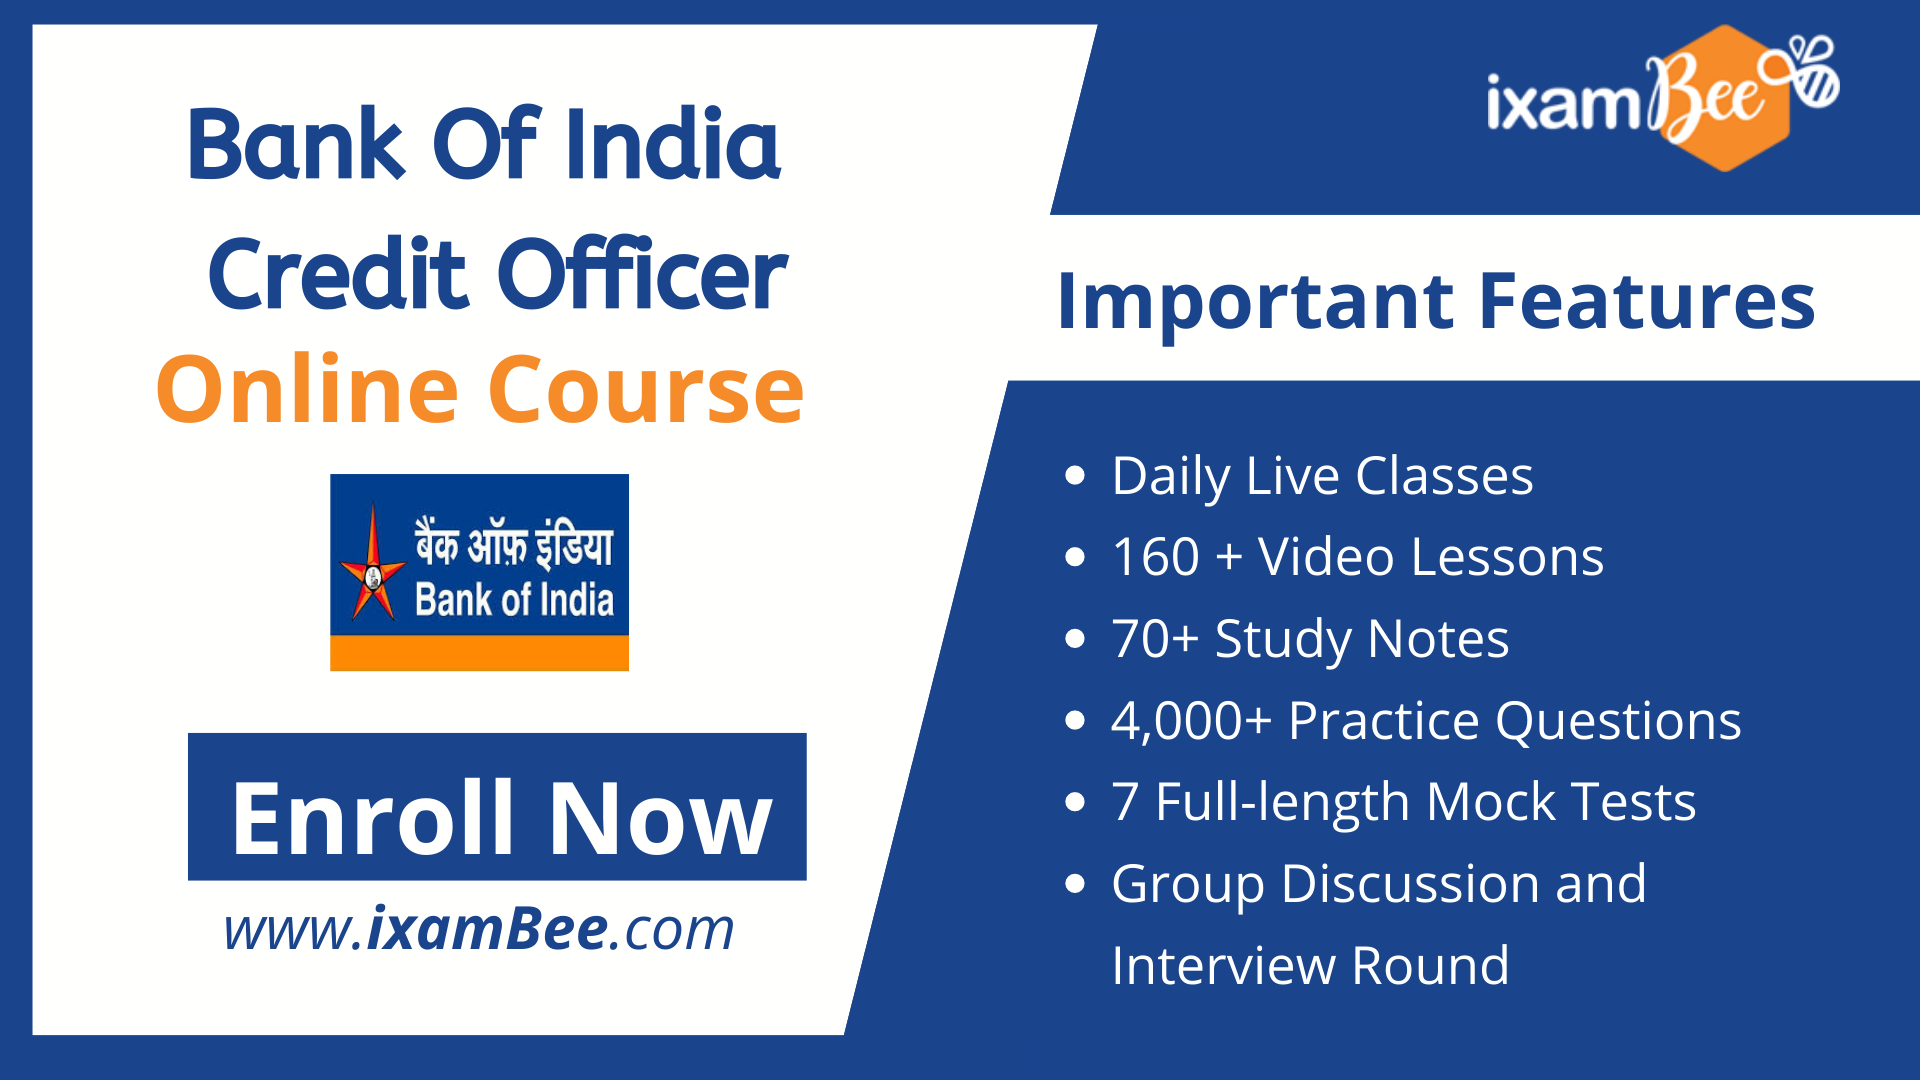 Bank of India Credit Officer online course